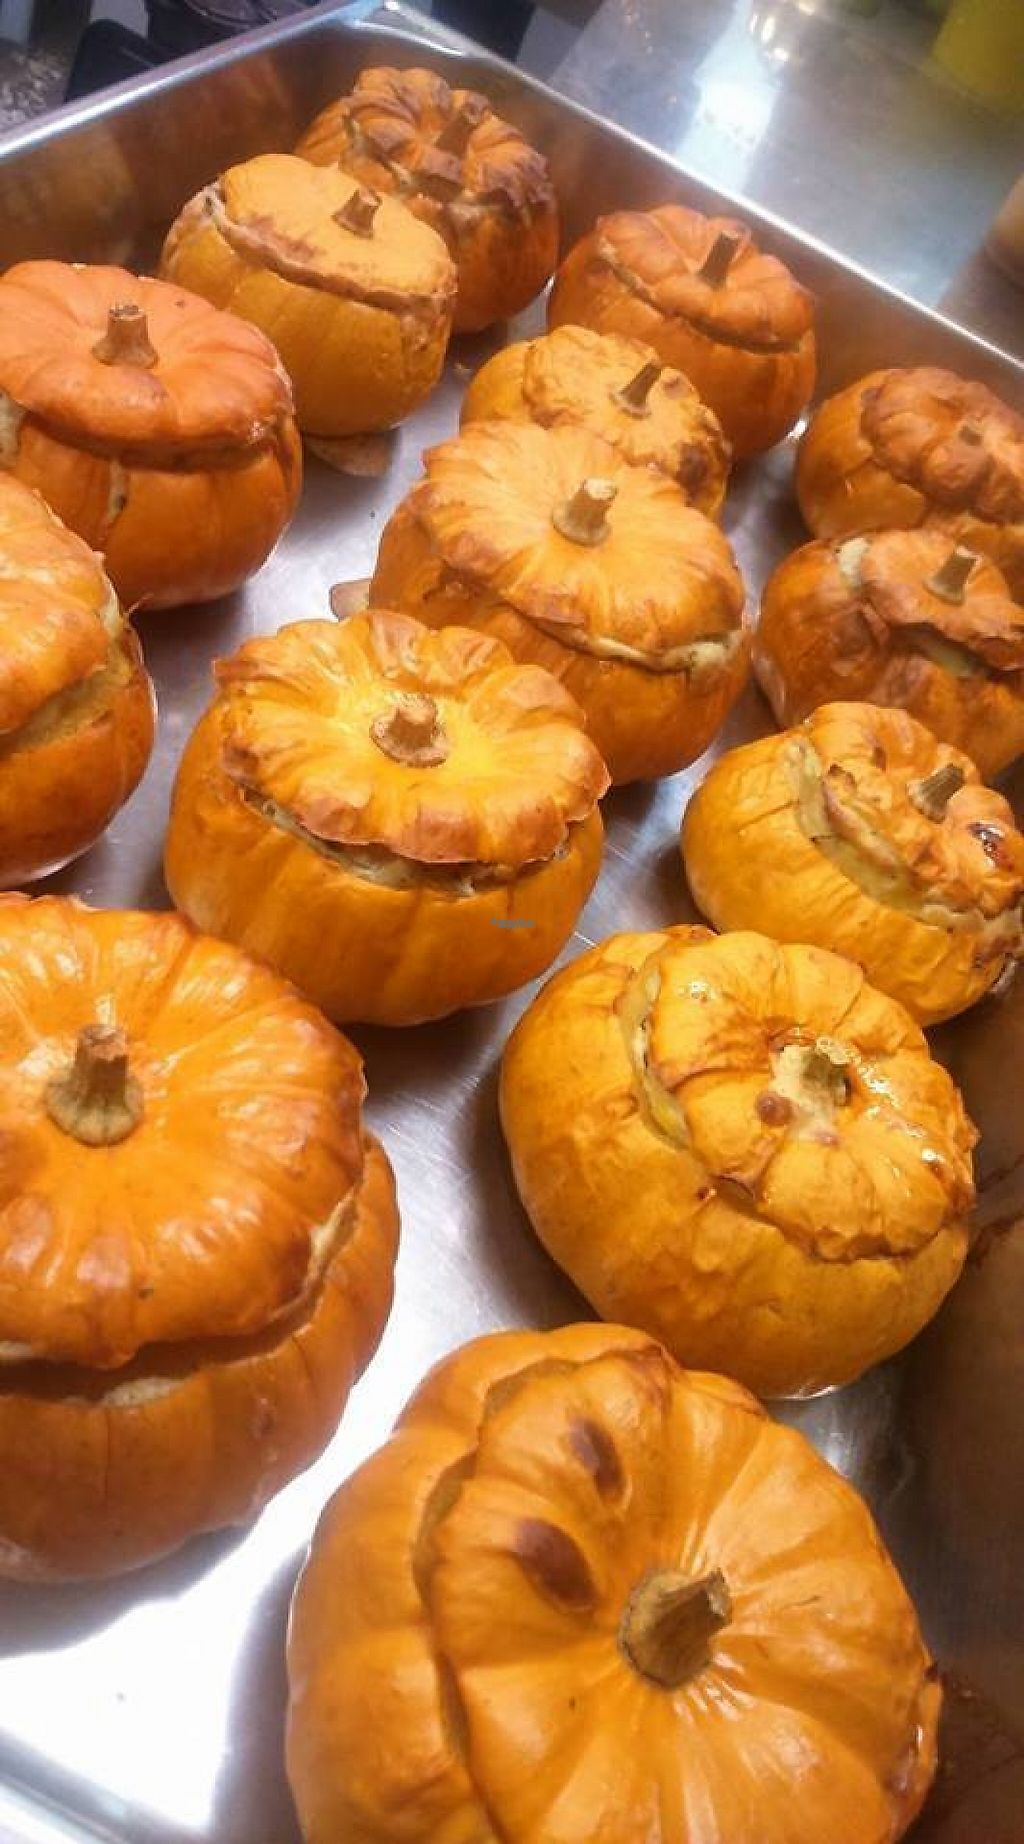 """Photo of Cafe Lumiere  by <a href=""""/members/profile/community"""">community</a> <br/>roasted pumpkins  <br/> November 13, 2016  - <a href='/contact/abuse/image/82139/189089'>Report</a>"""